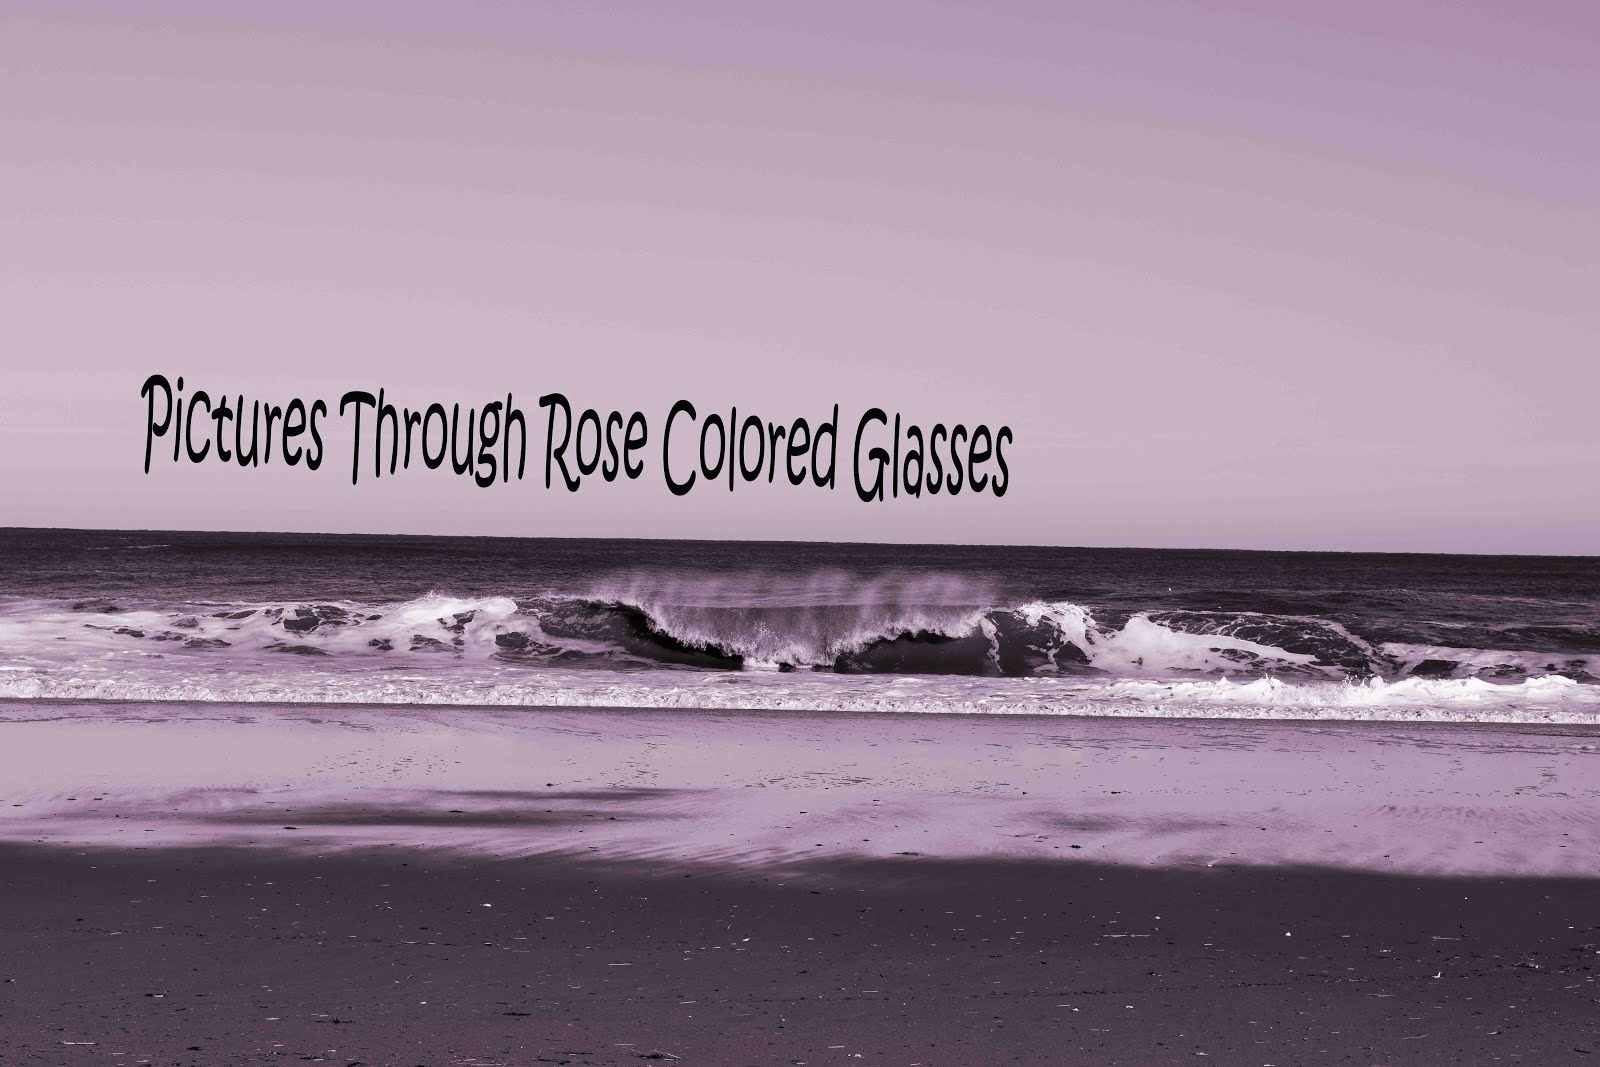 Pictures through Rose Colored Glasses